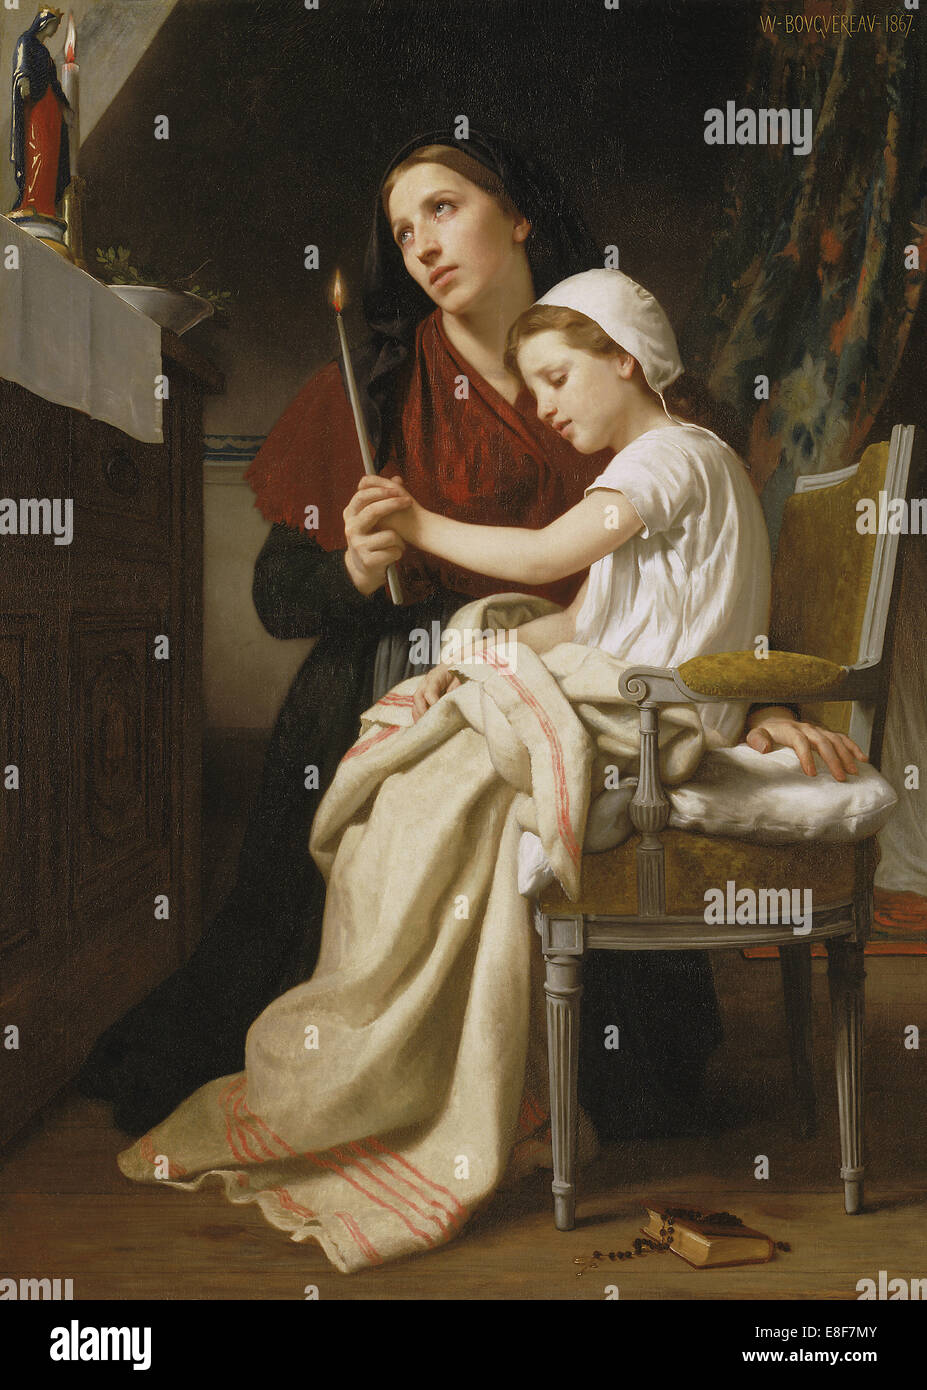 The Thank Offering. Artist: Bouguereau, William-Adolphe (1825-1905) - Stock Image